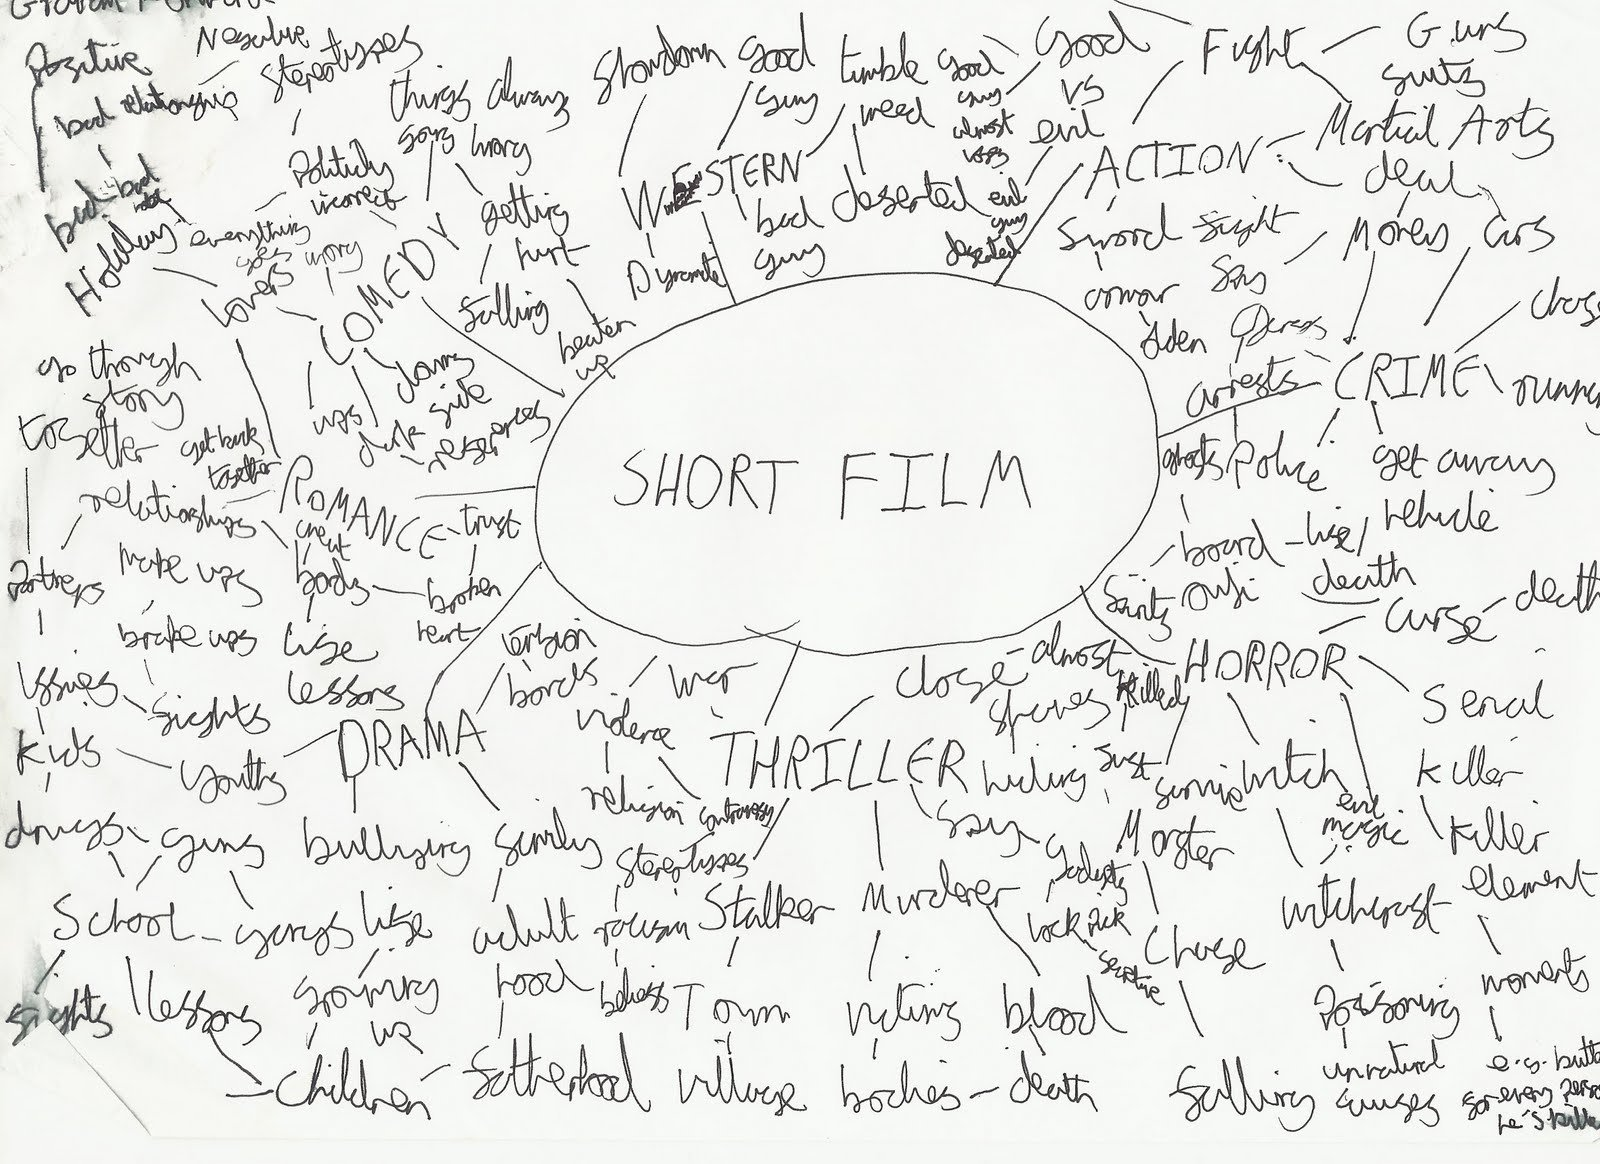 10 Lovable Short Film Ideas For Students graham forward a2 media studies blog initial mindmap first ideas 1 2020